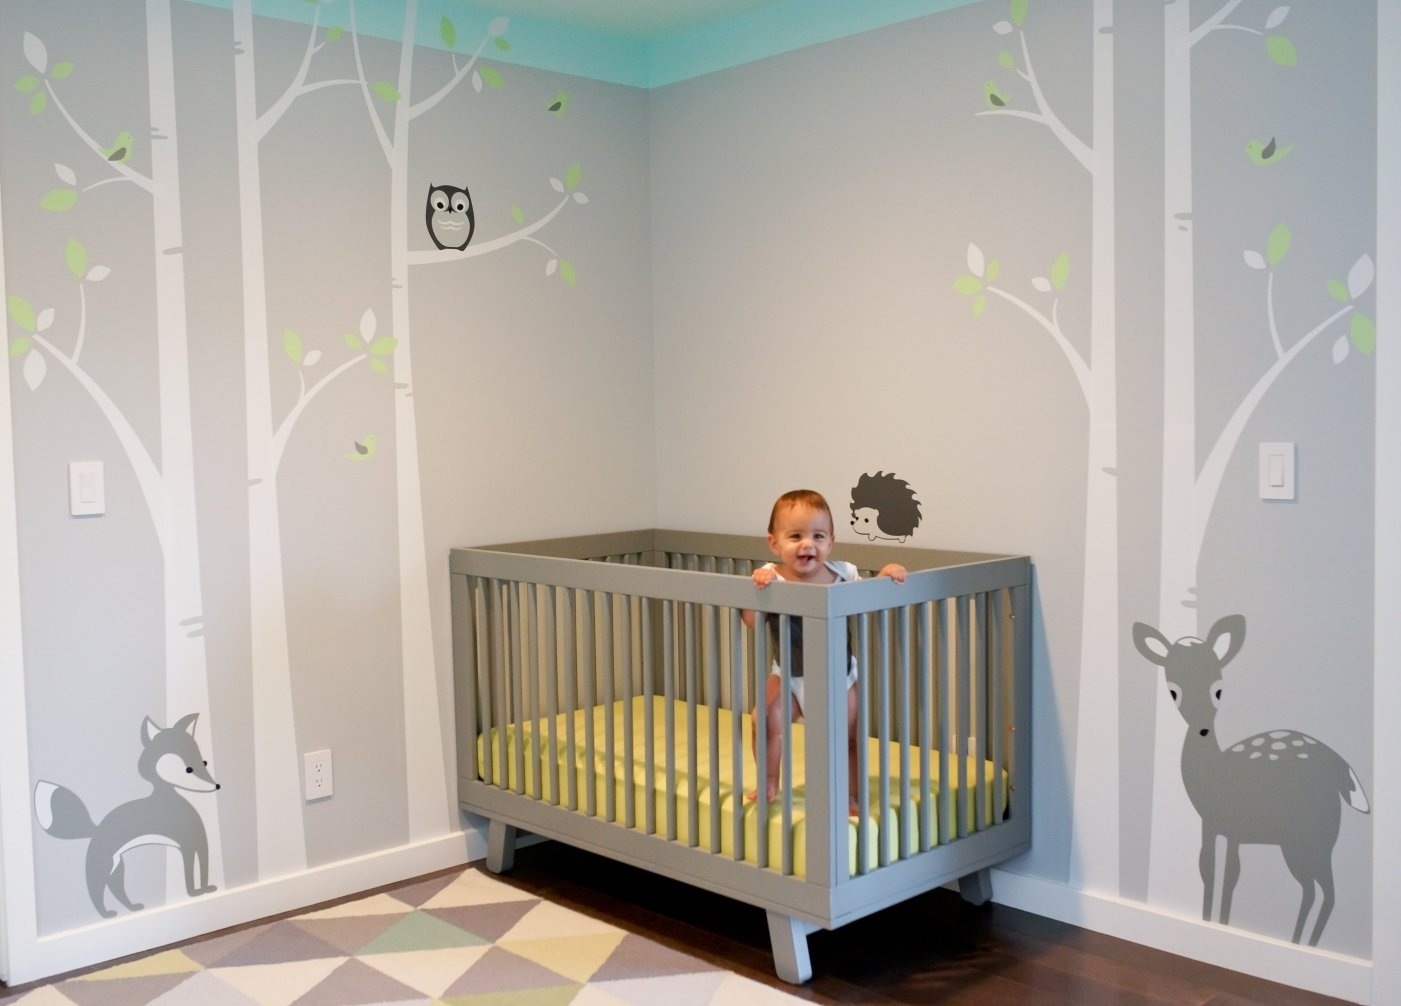 10 Lovely Baby Boy Room Decorating Ideas baby boy room decoration pictures home decorating ideas 2020